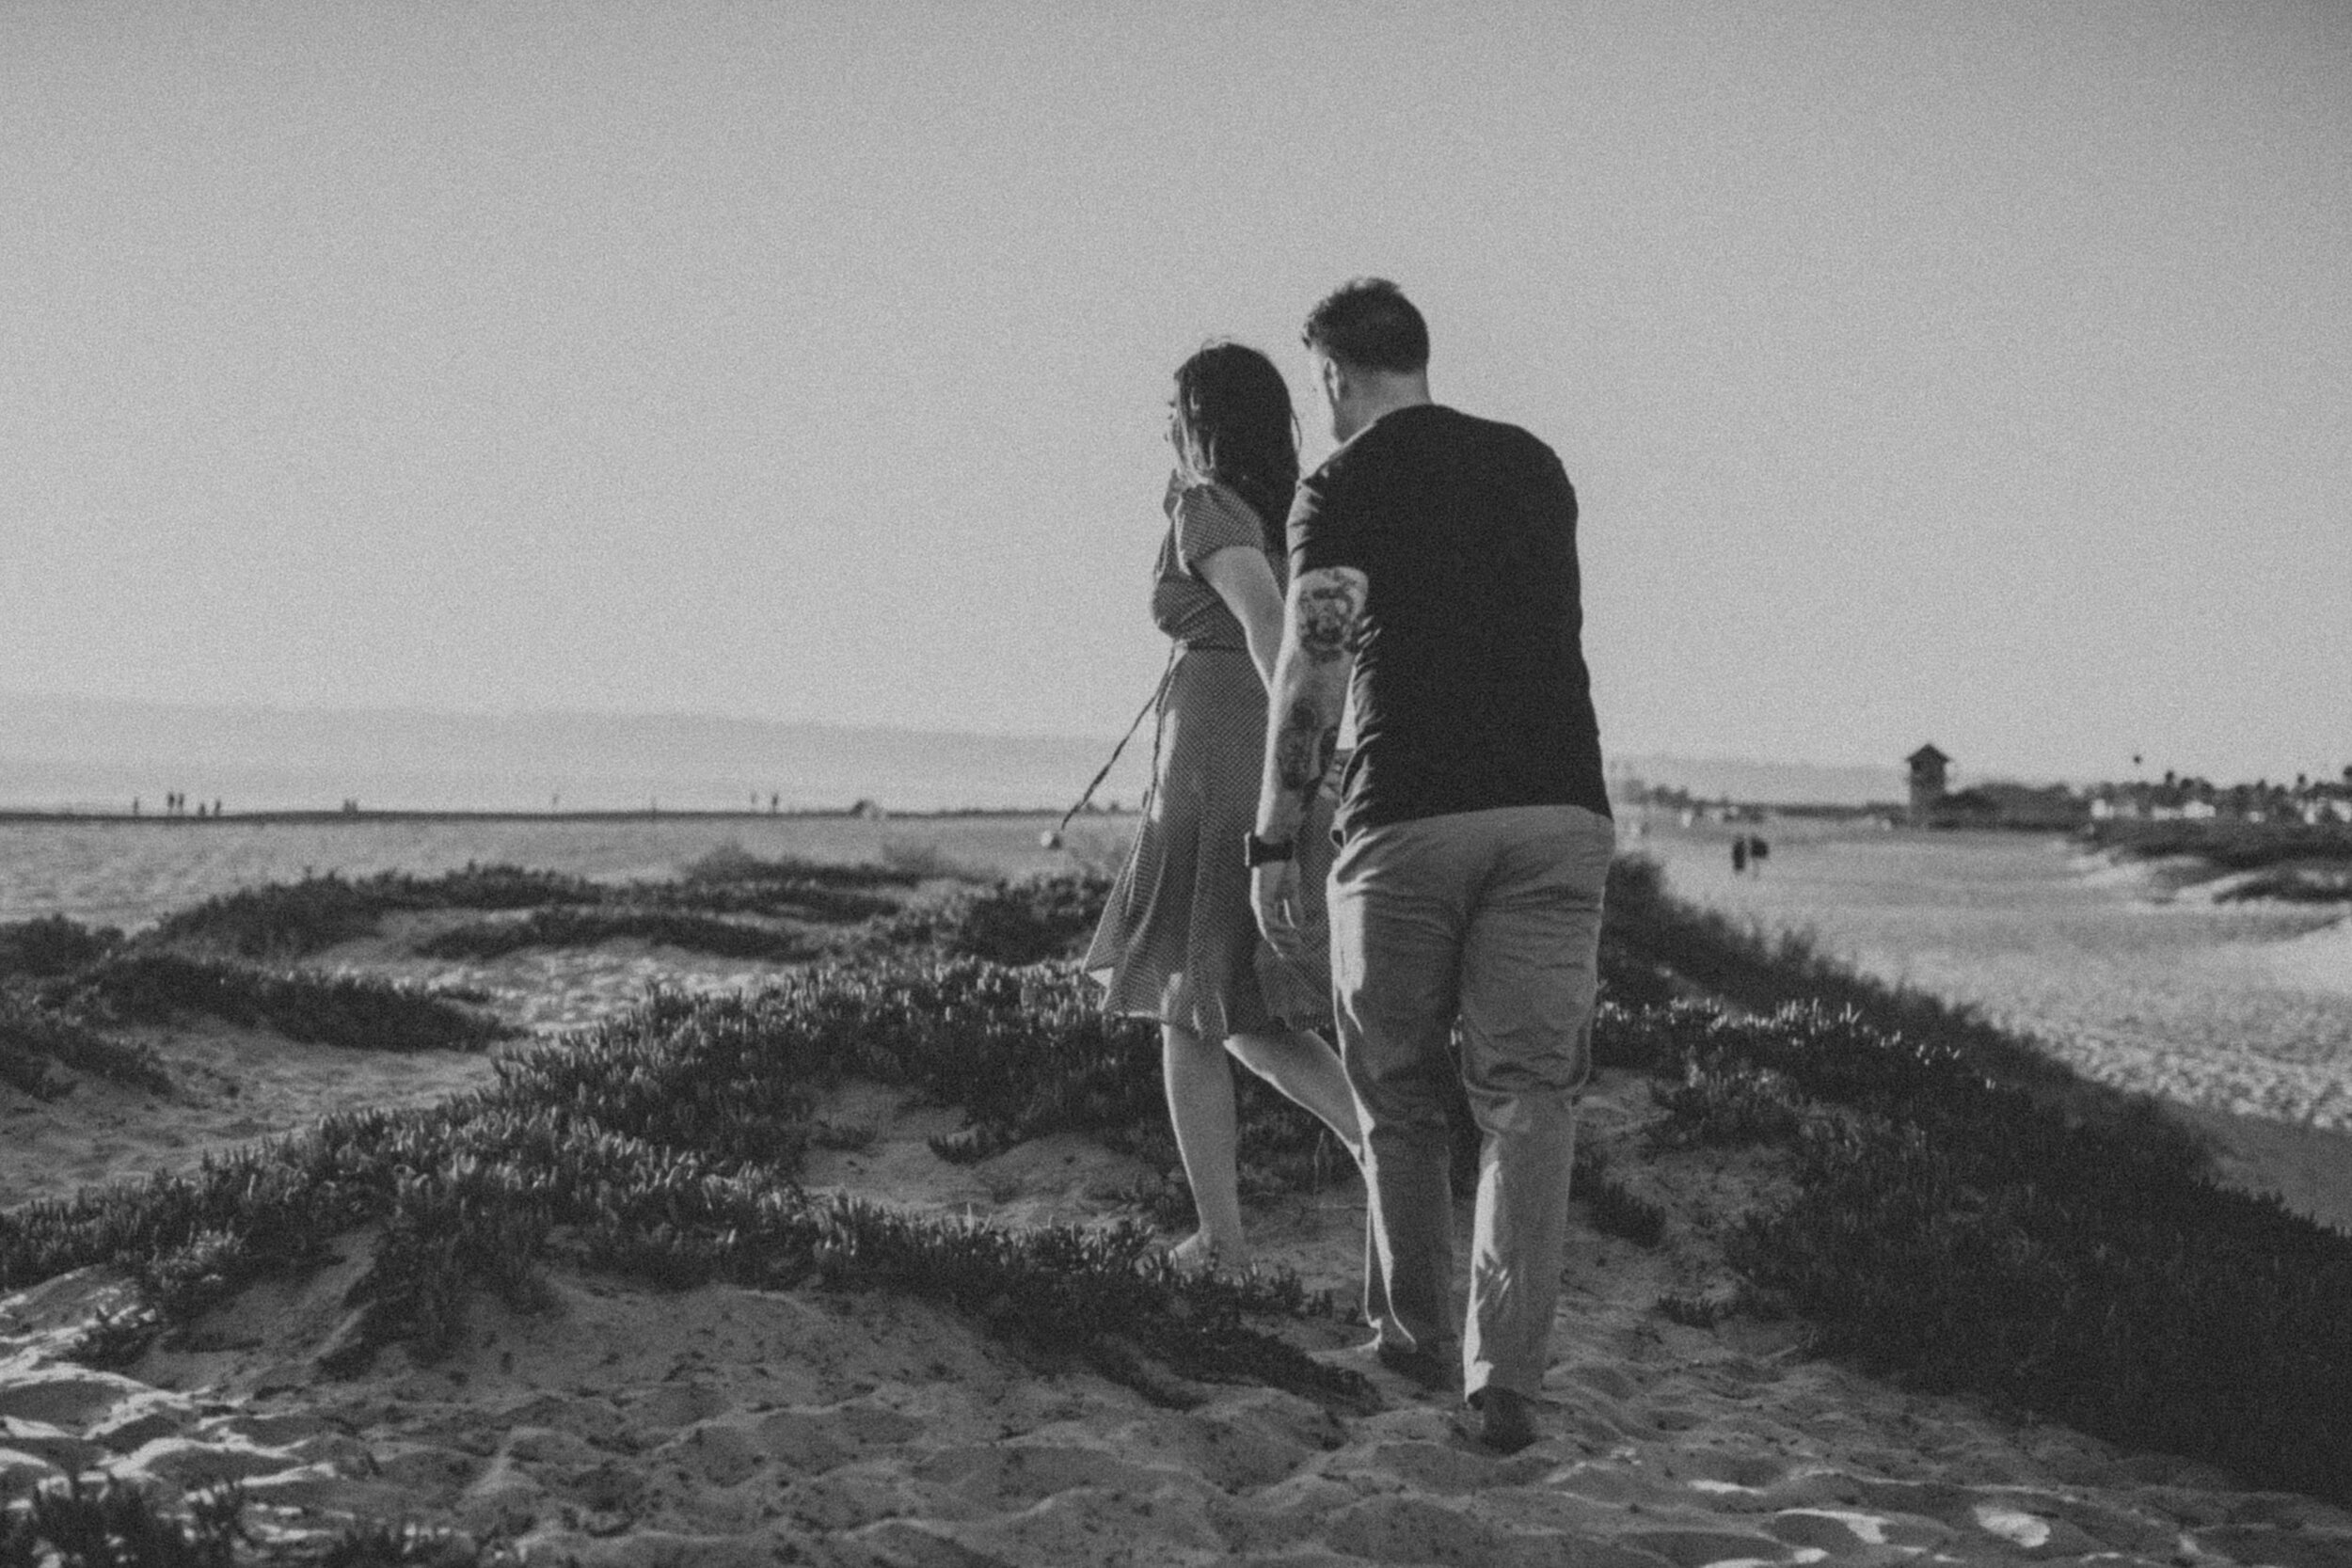 coronado-beach-engagement-session-valerielendvayphoto-054.jpg